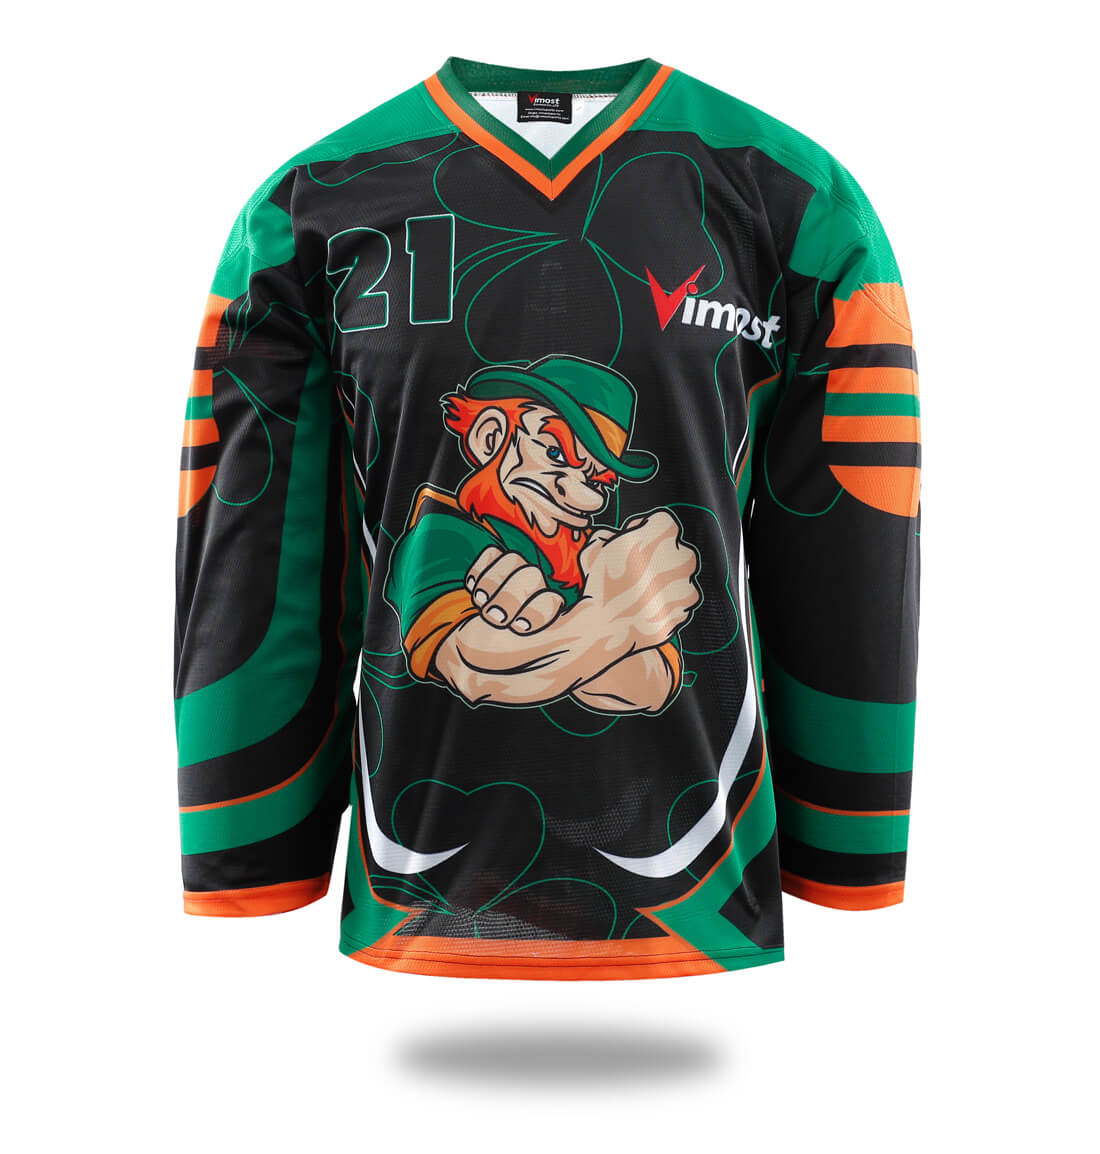 Hot Sales Product Ireland Design Ice Hockey Jersey-Vimost Sports